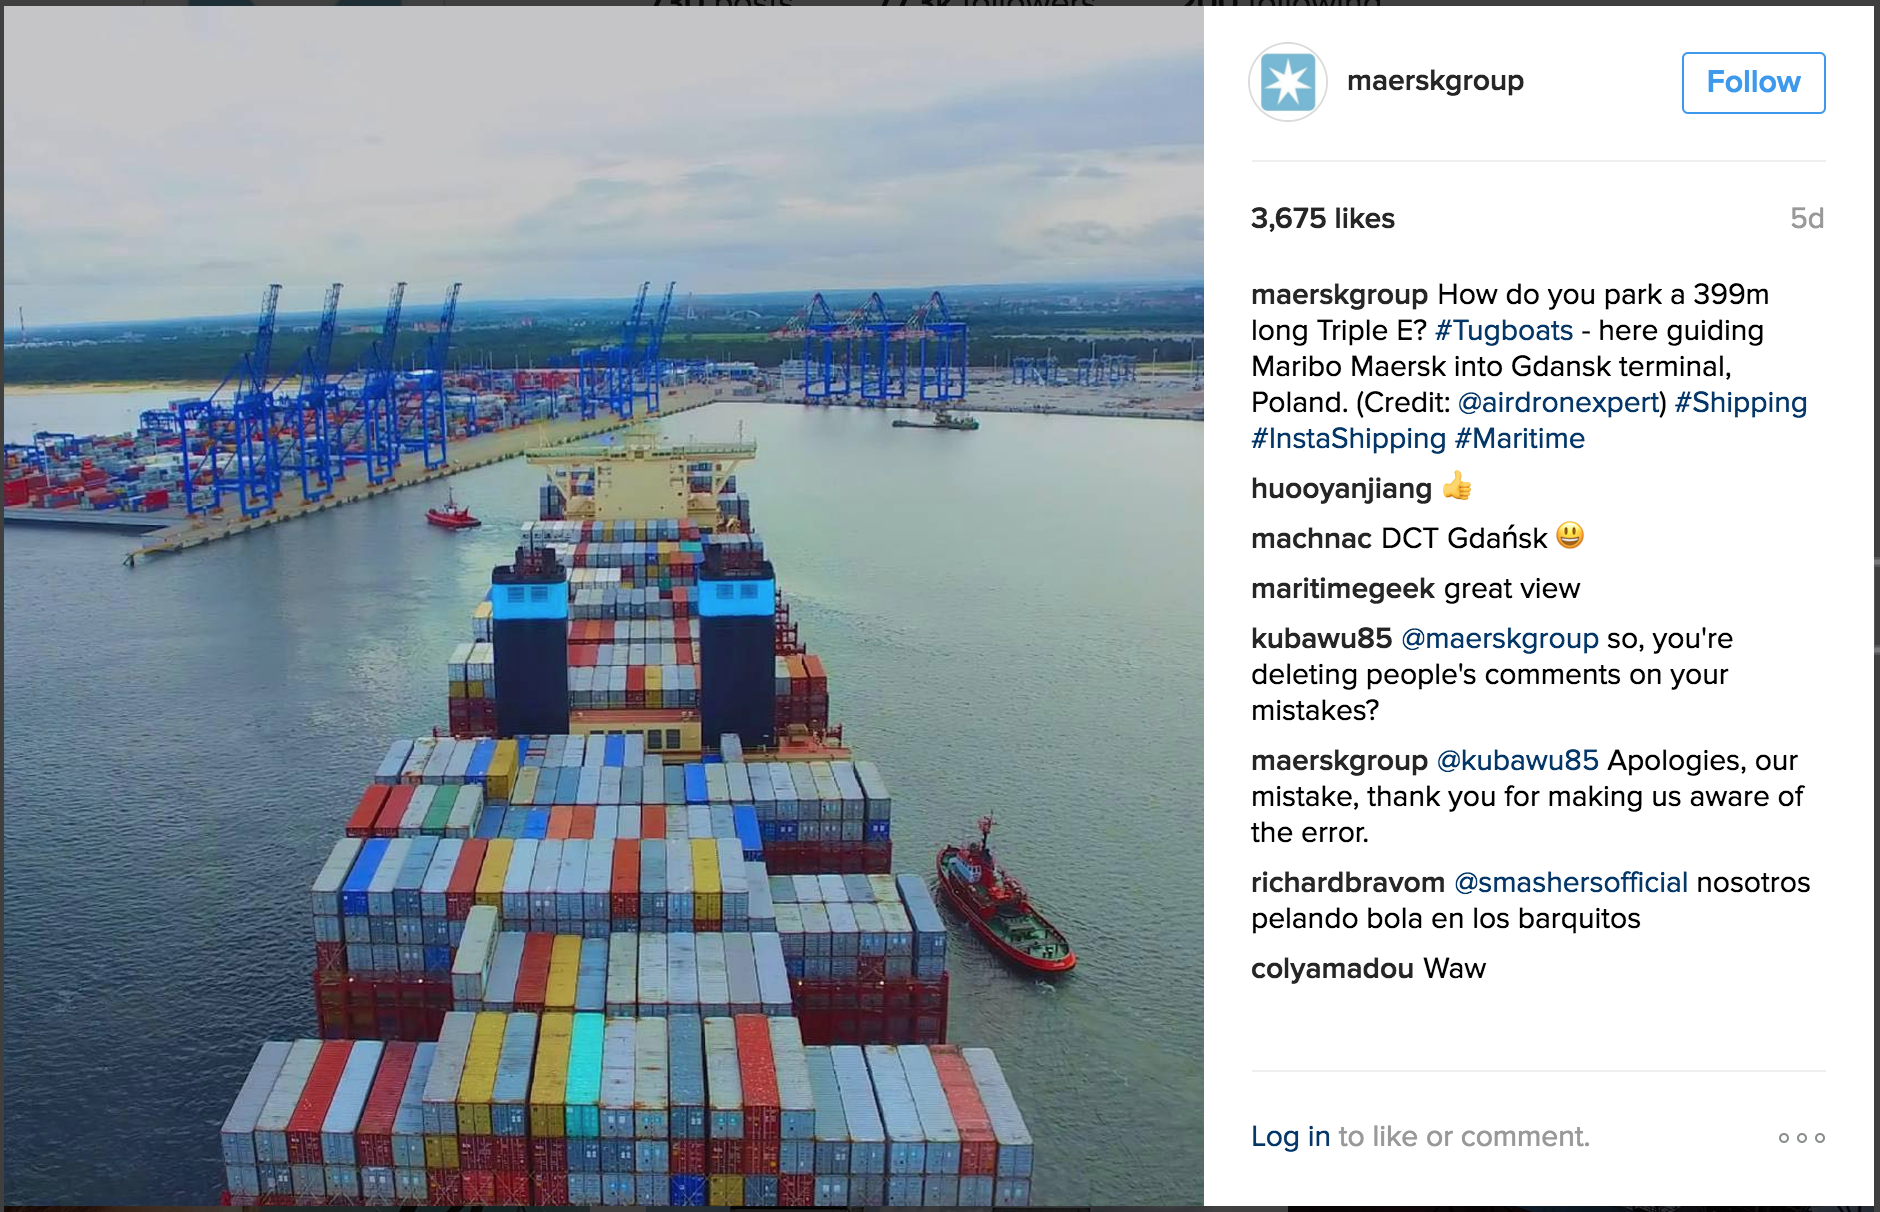 B2B social sharing, Maersk on Instagram